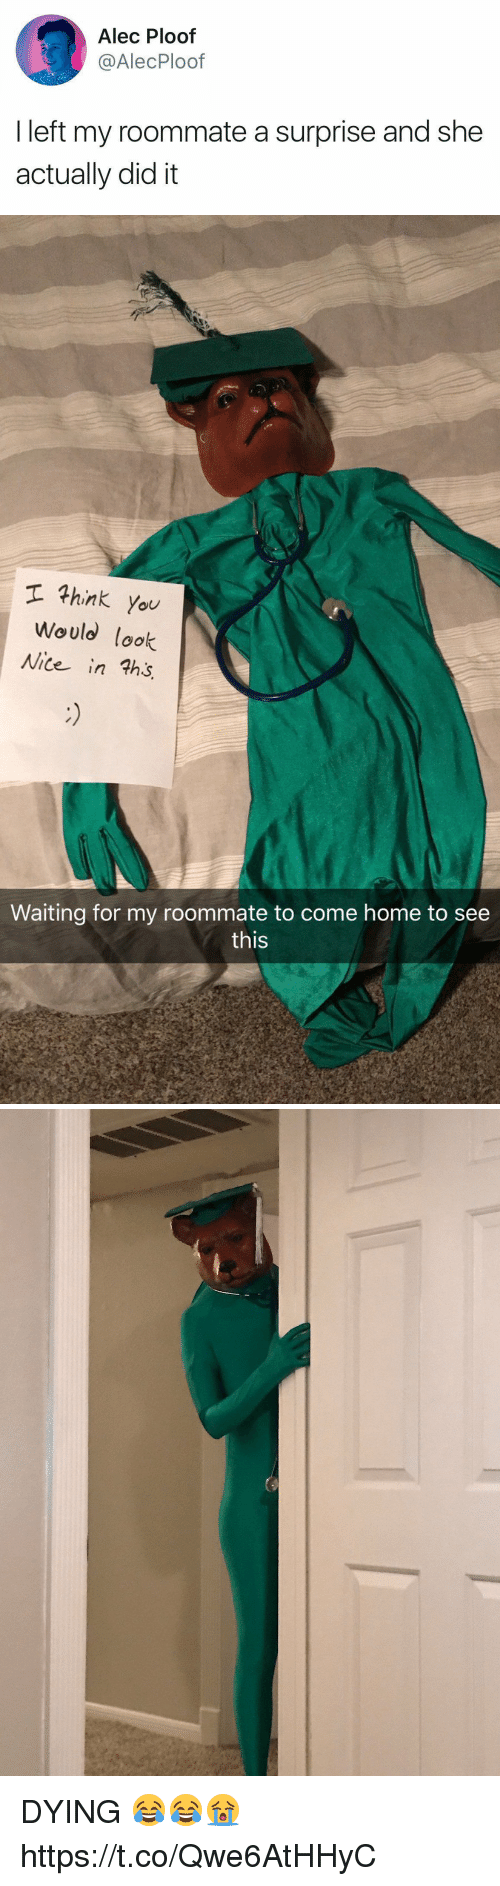 Roommate, Home, and Girl Memes: Alec Ploof  @AlecPloof  I left my roommate a surprise and she  actually did it   hink you  Would look  Nite in ths  Waiting for my roommate to come home to see  this DYING 😂😂😭 https://t.co/Qwe6AtHHyC